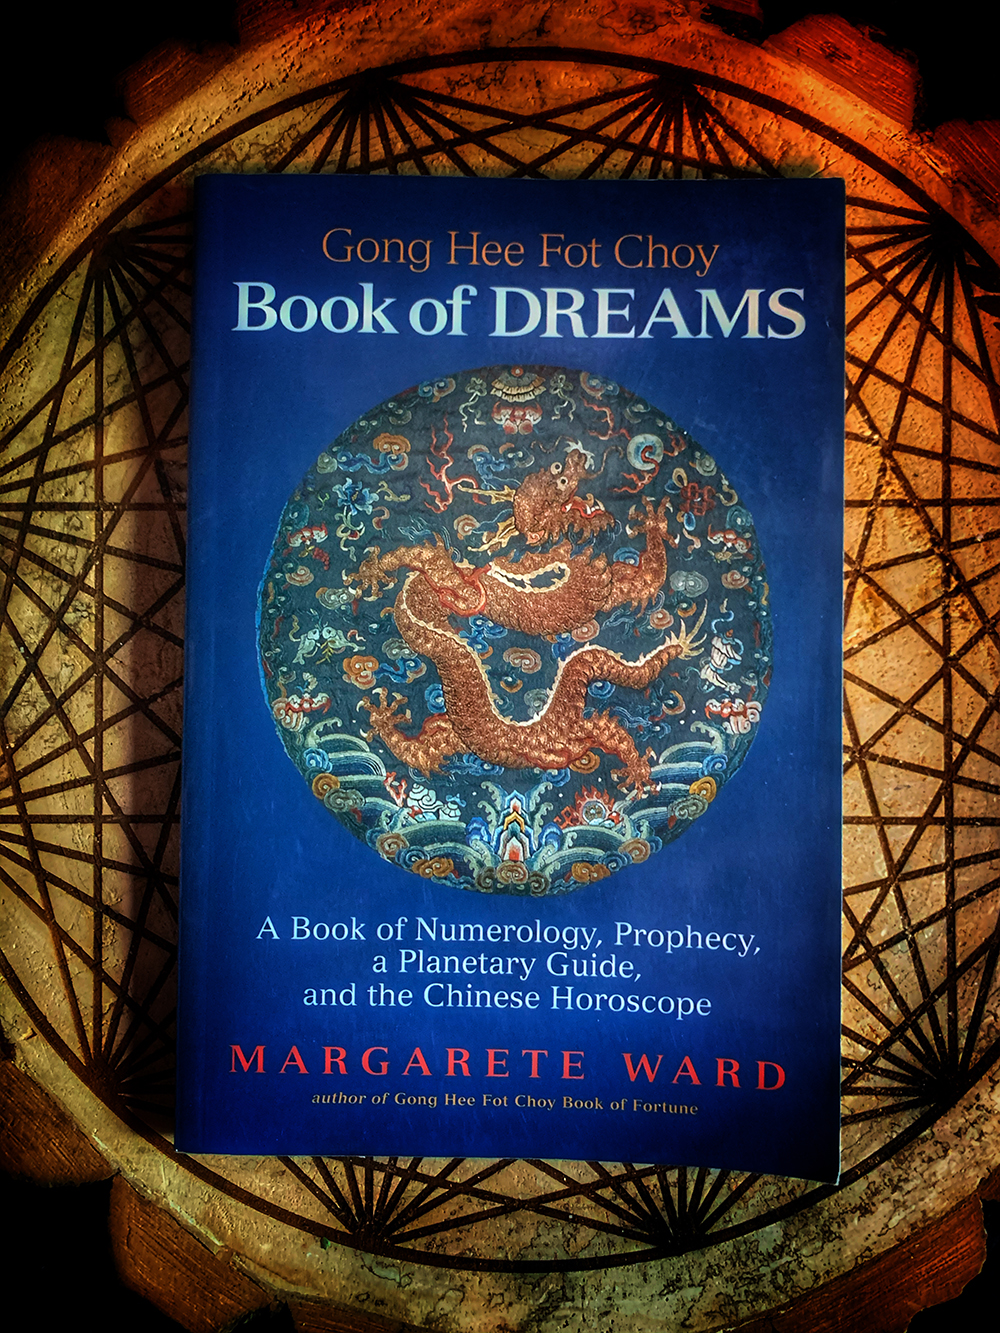 Going Hee Fot Choy Book of Dreams: A Book of Numerology, Prophecy, a Planetary Guide, and the Chinese Horoscope